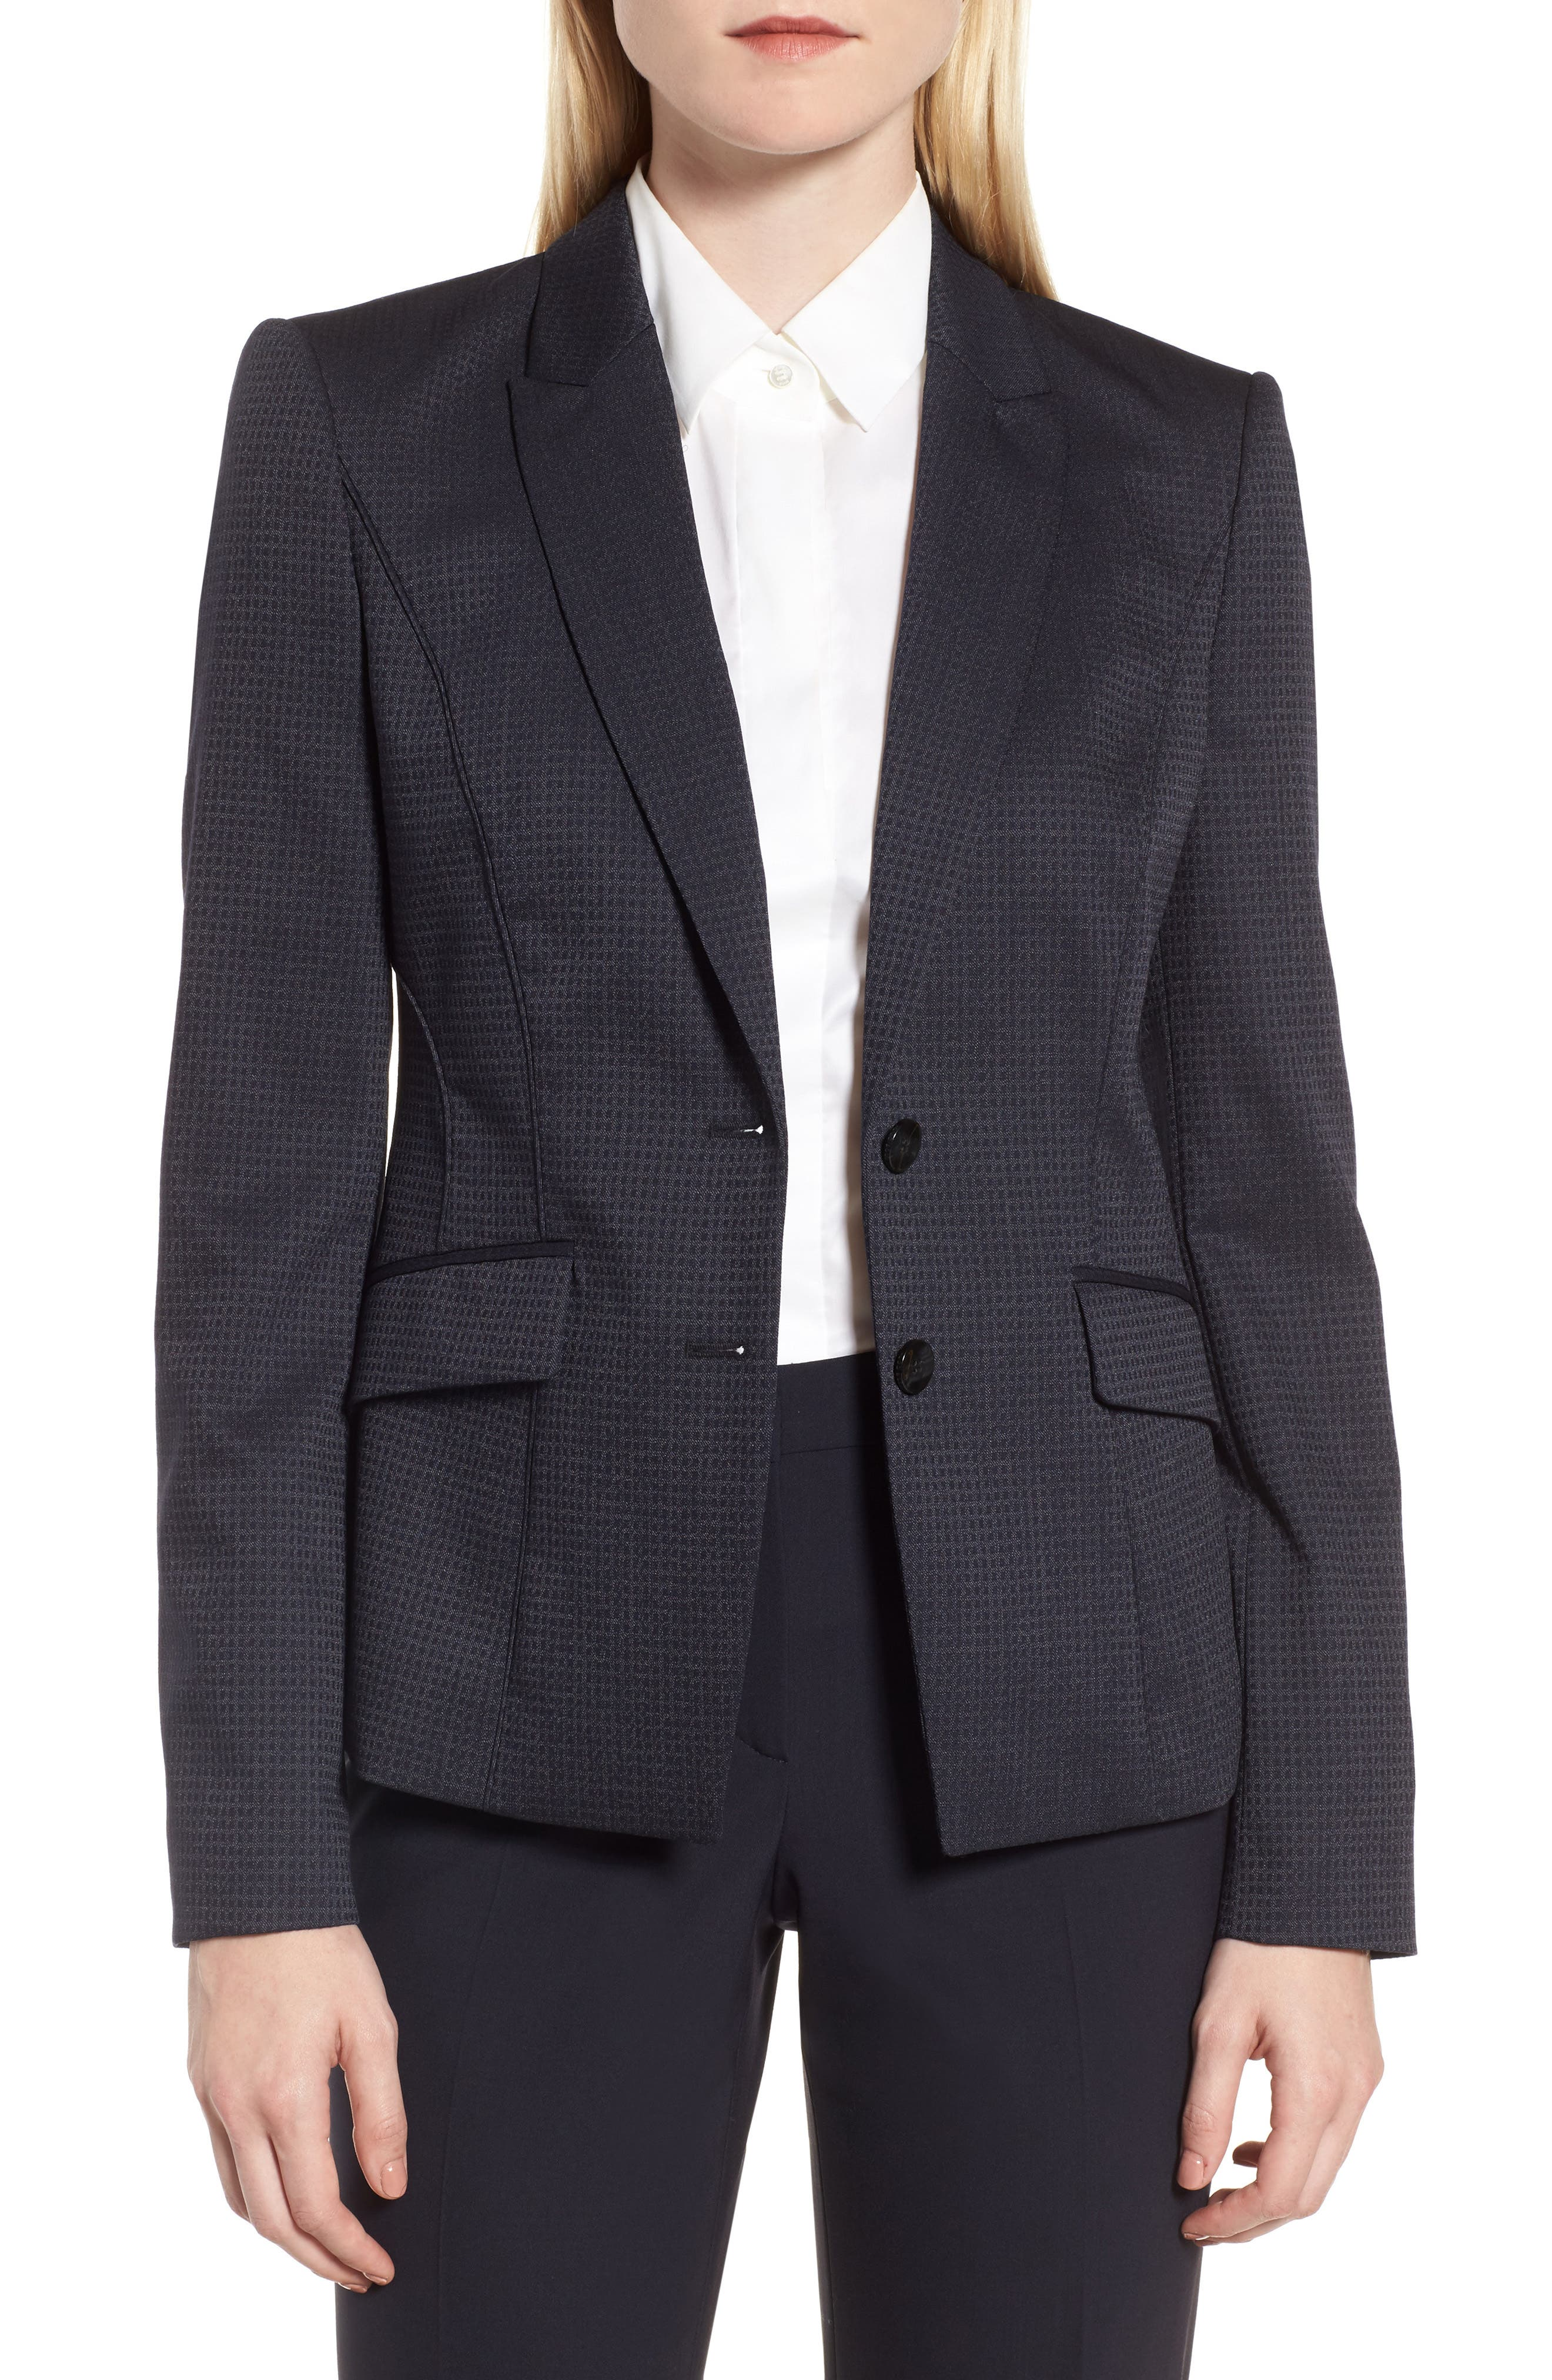 Jukani Check Wool Blend Suit Jacket,                         Main,                         color, 020